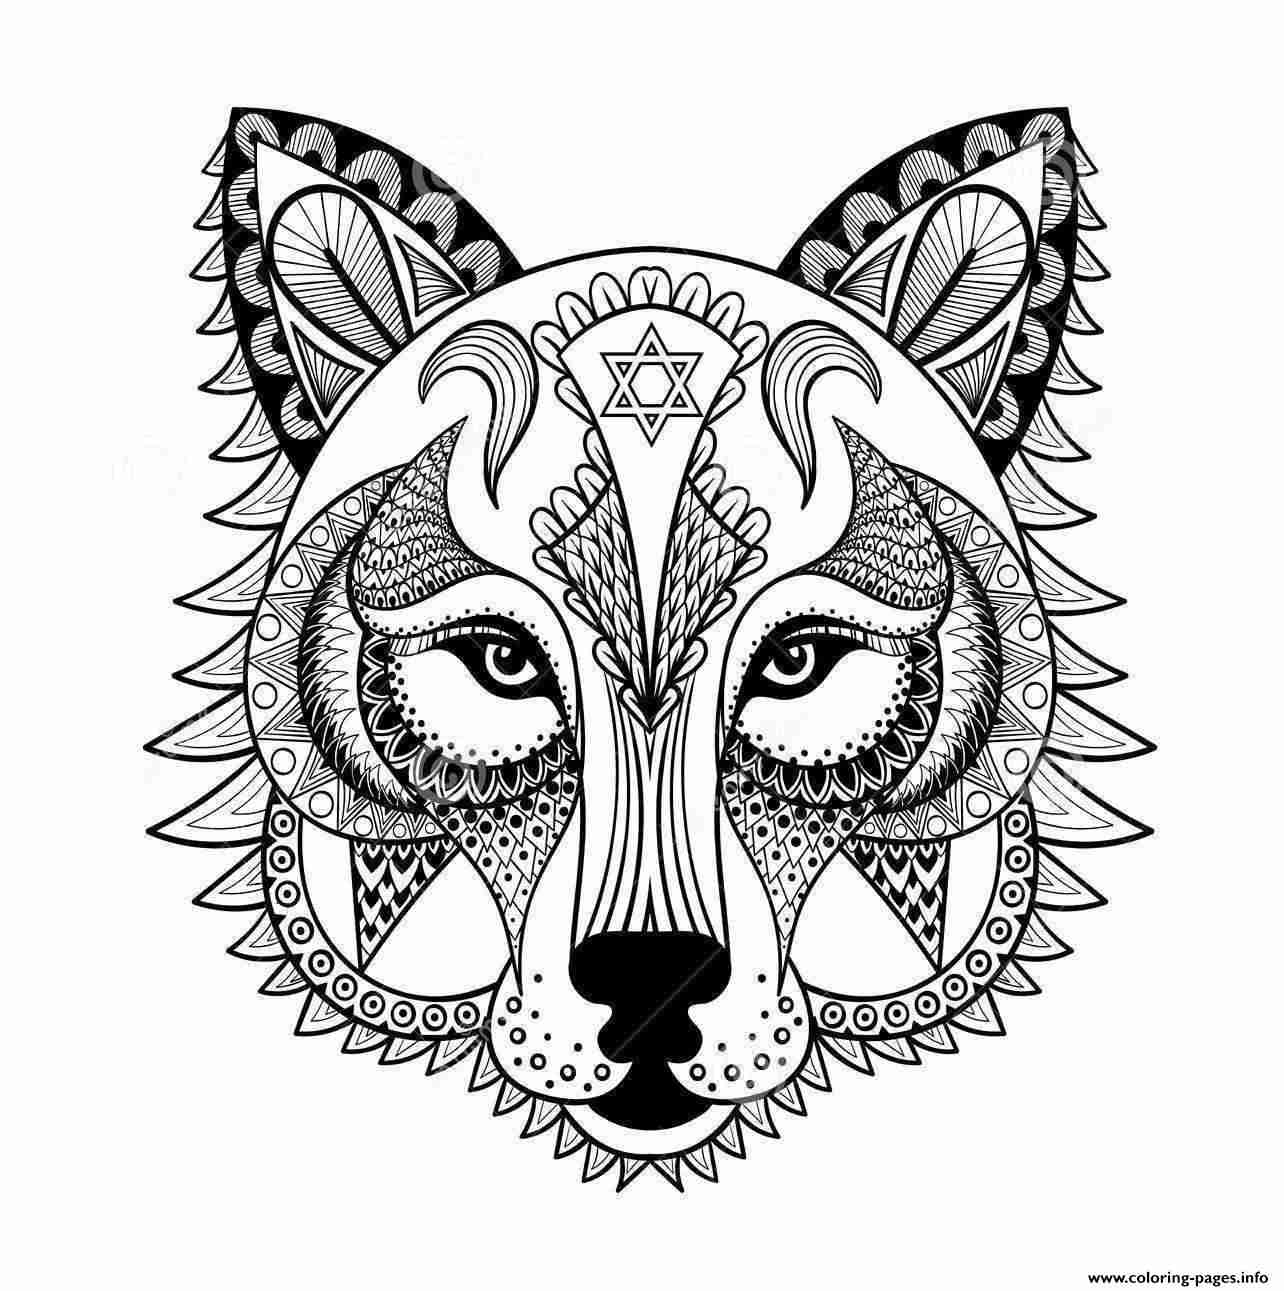 1284x1291 Halloween Mandala Wolf Head Coloring Pages For Lovely Adult